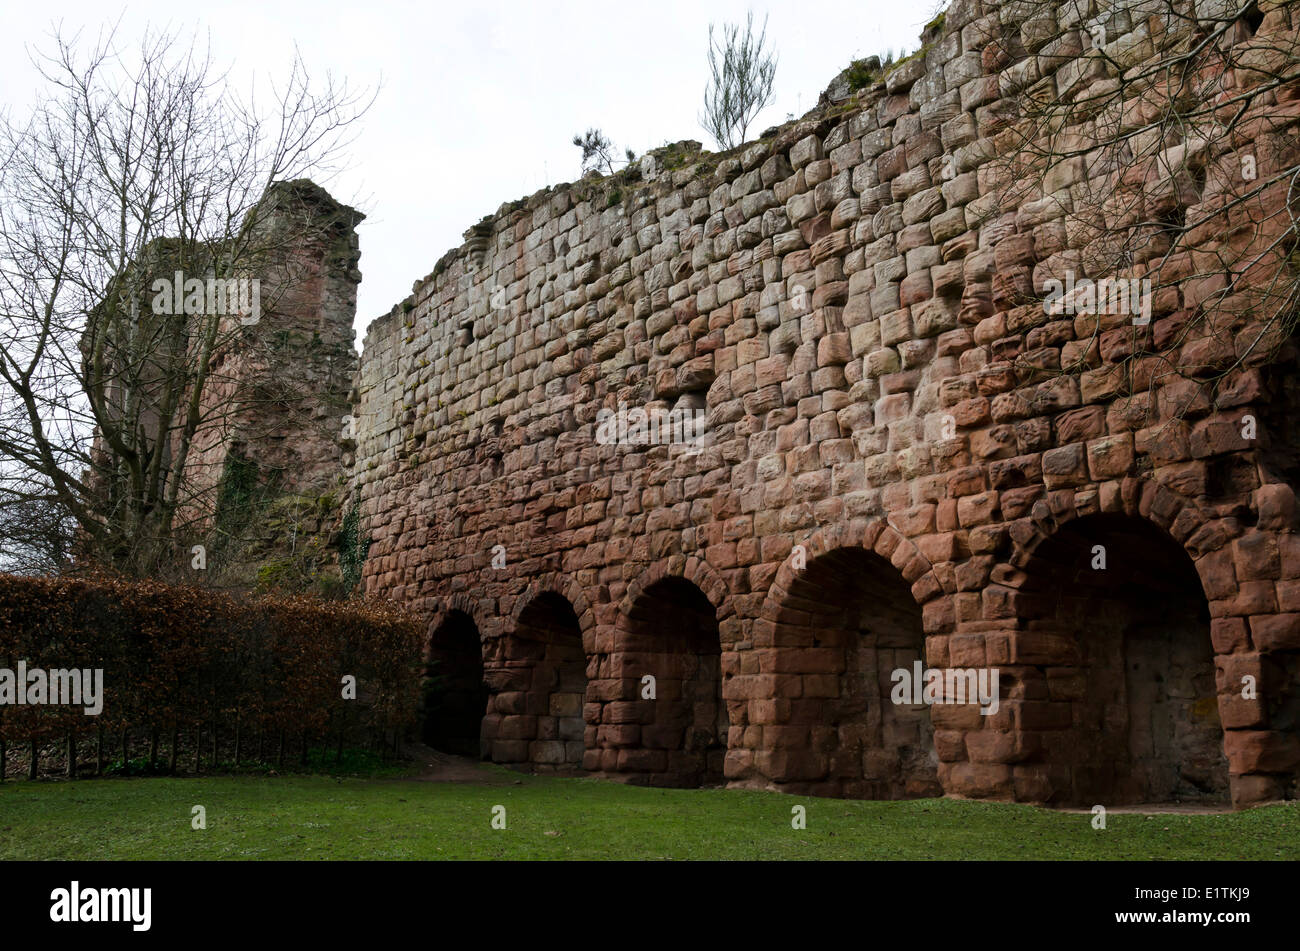 The remains of  Roslin Castle in Midlothian, Scotland. - Stock Image